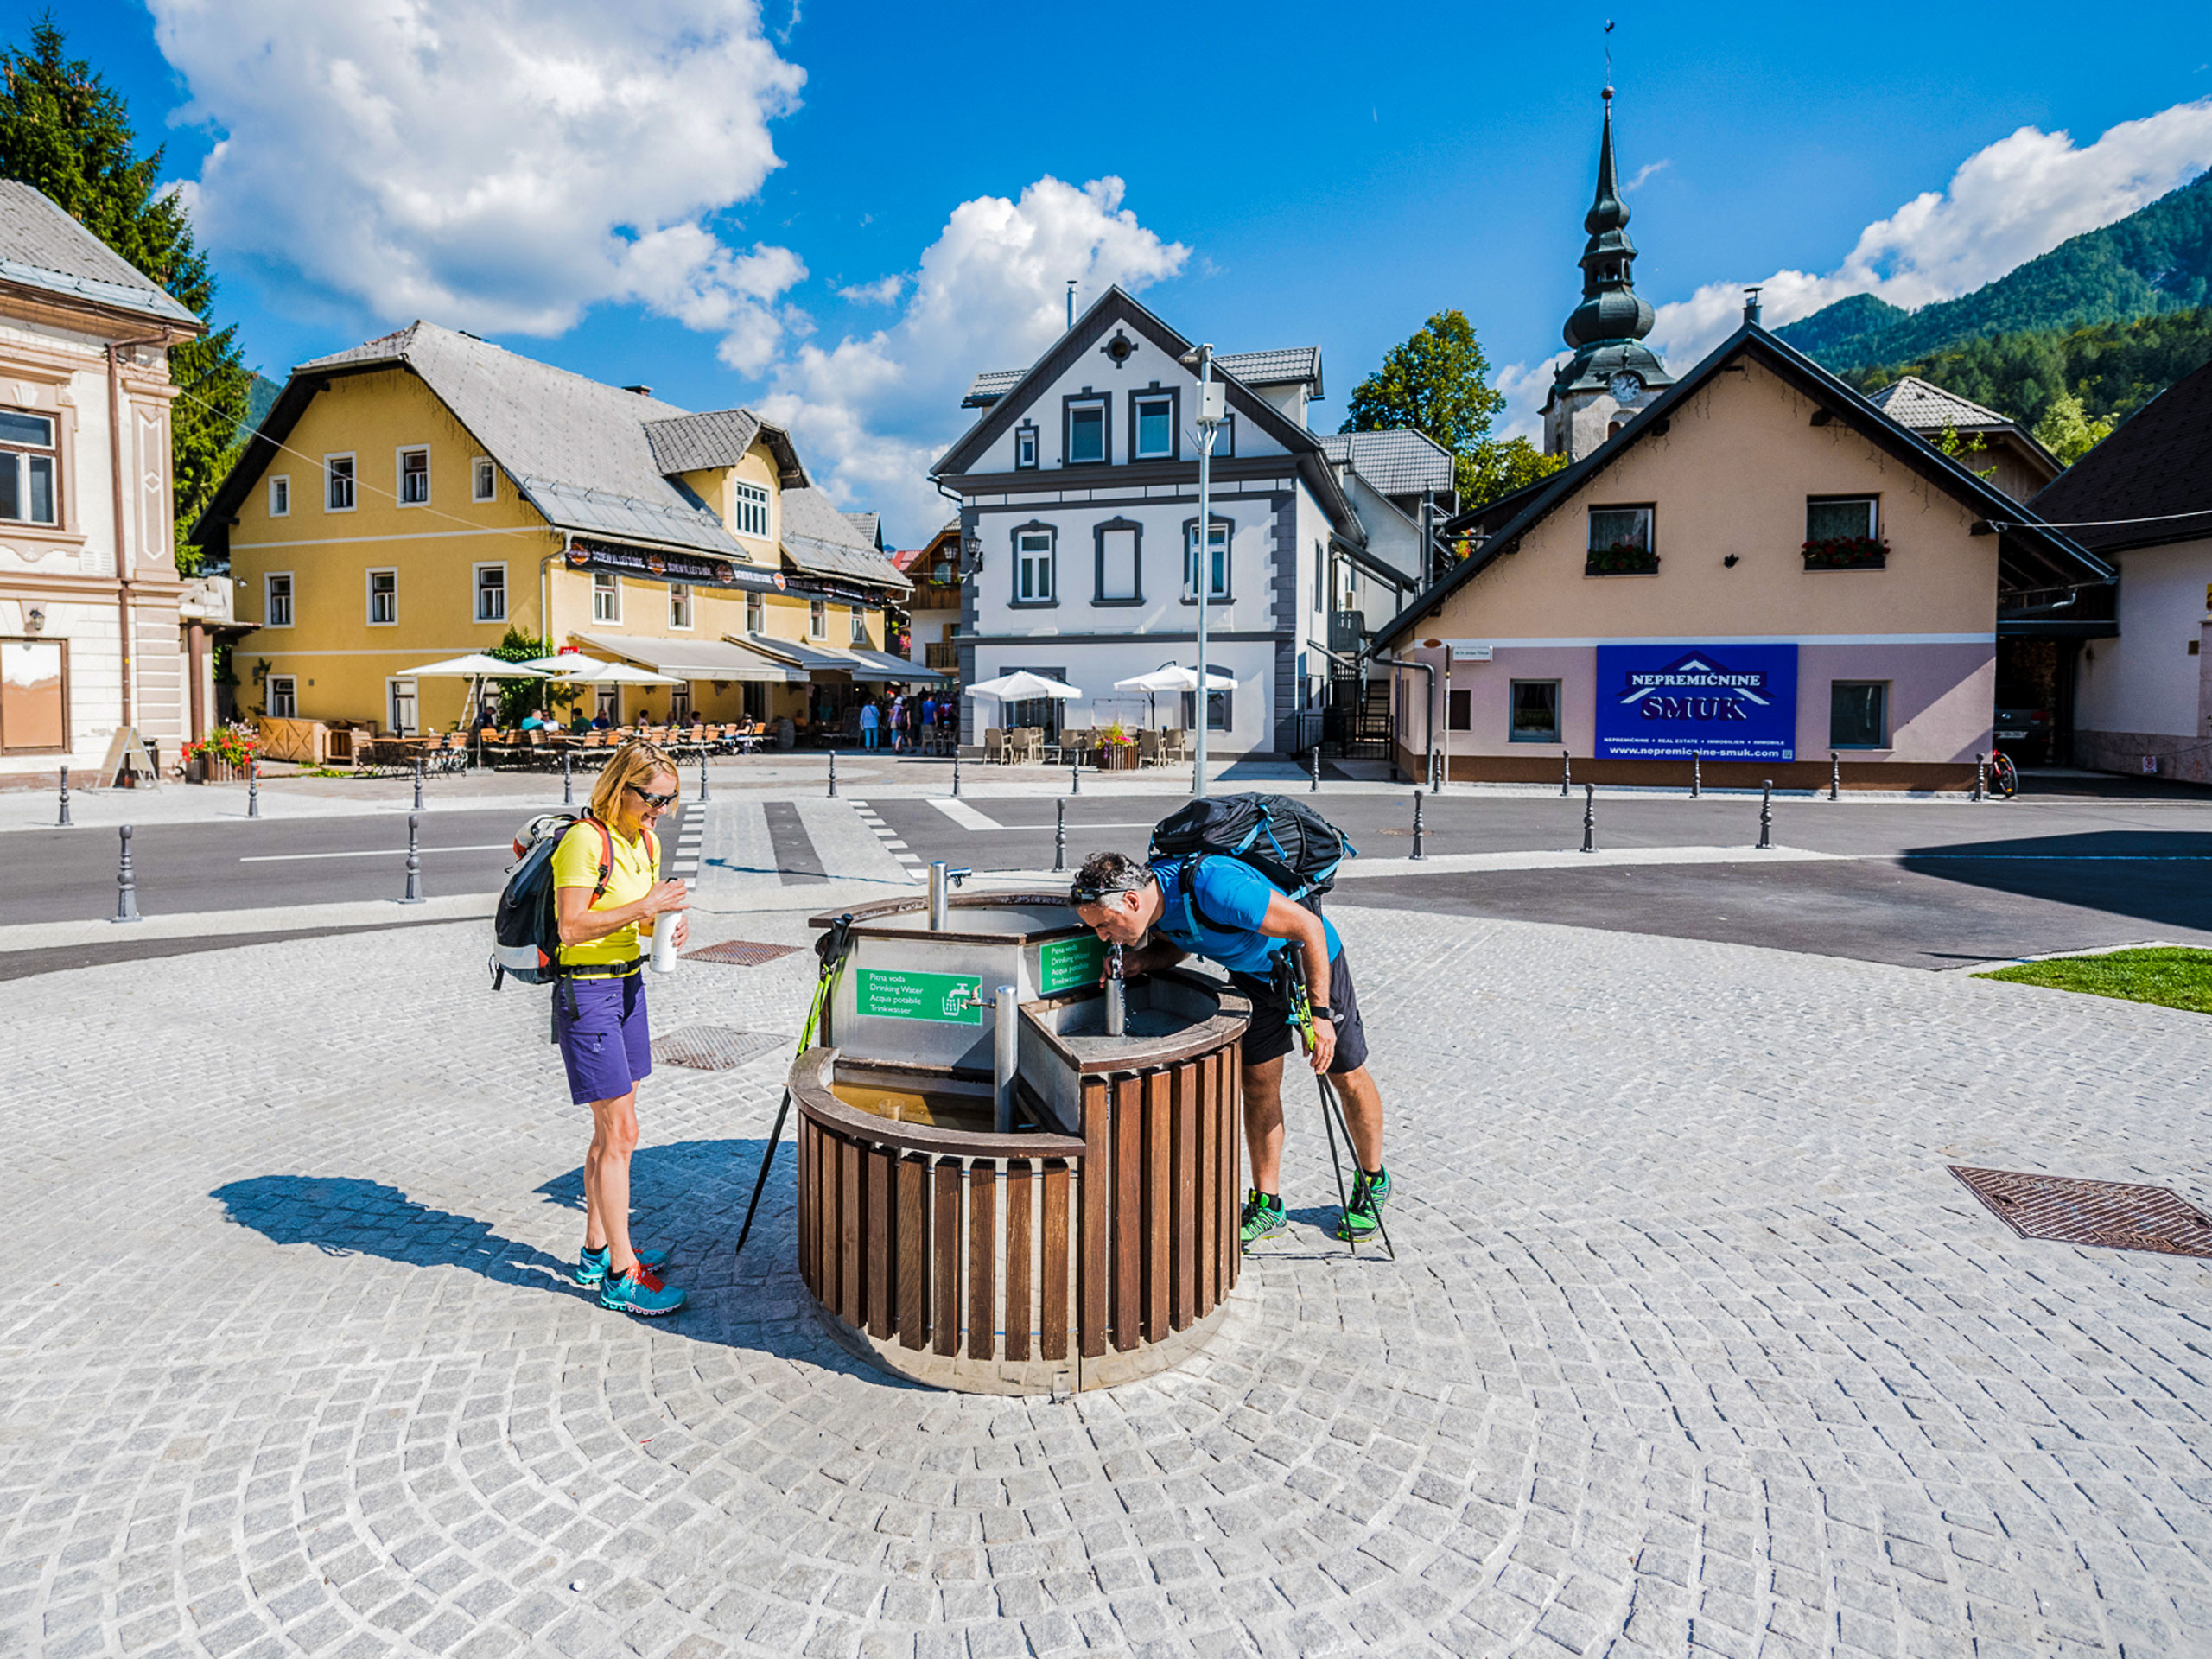 Drinking fountain in the city